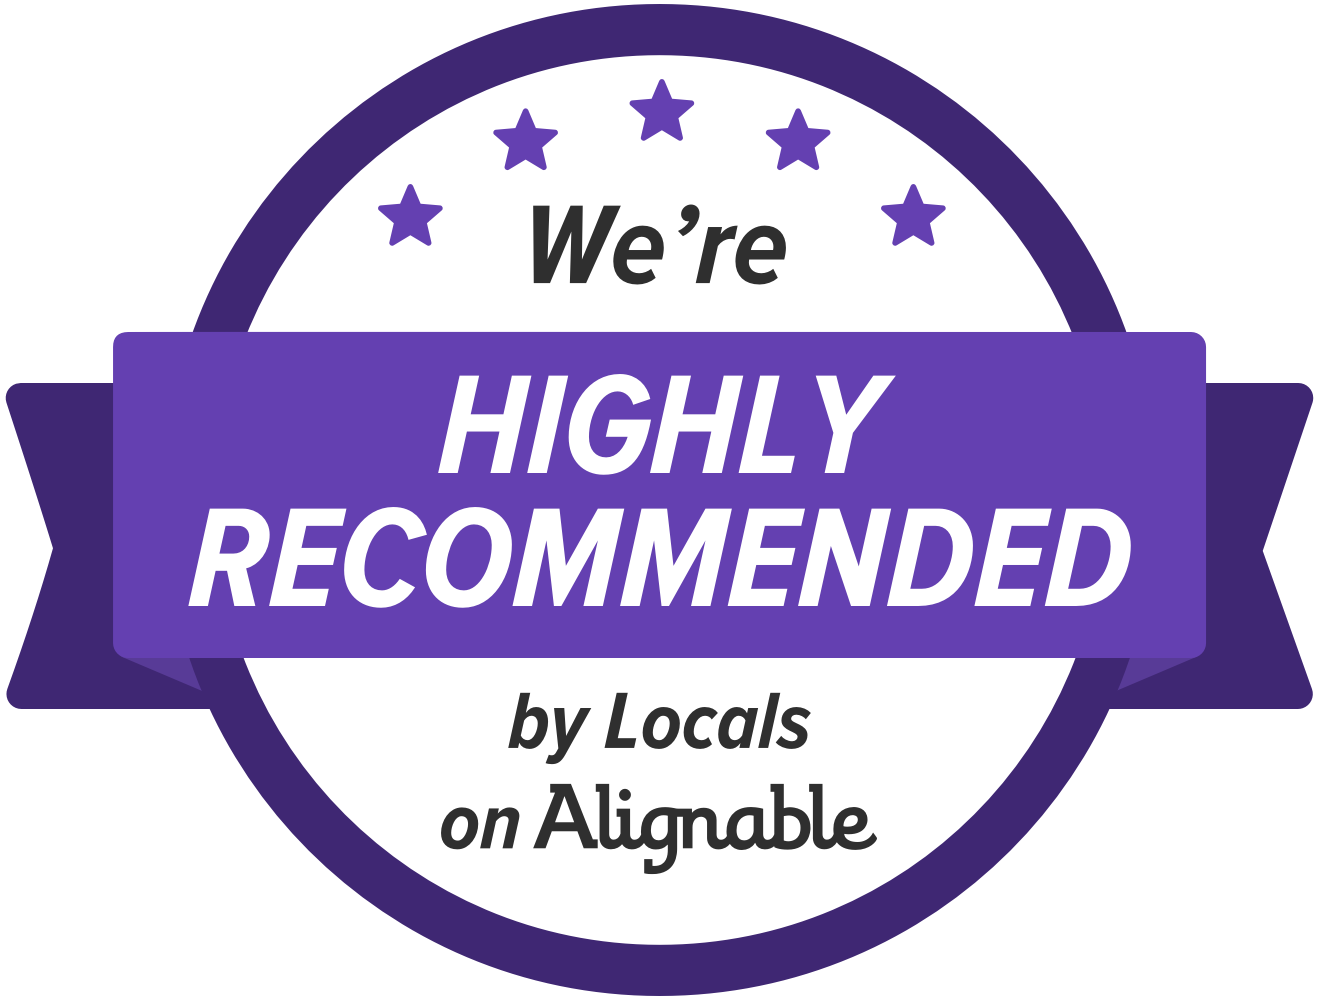 Tailored Tech is Highly Recommended by Locals on Alignable